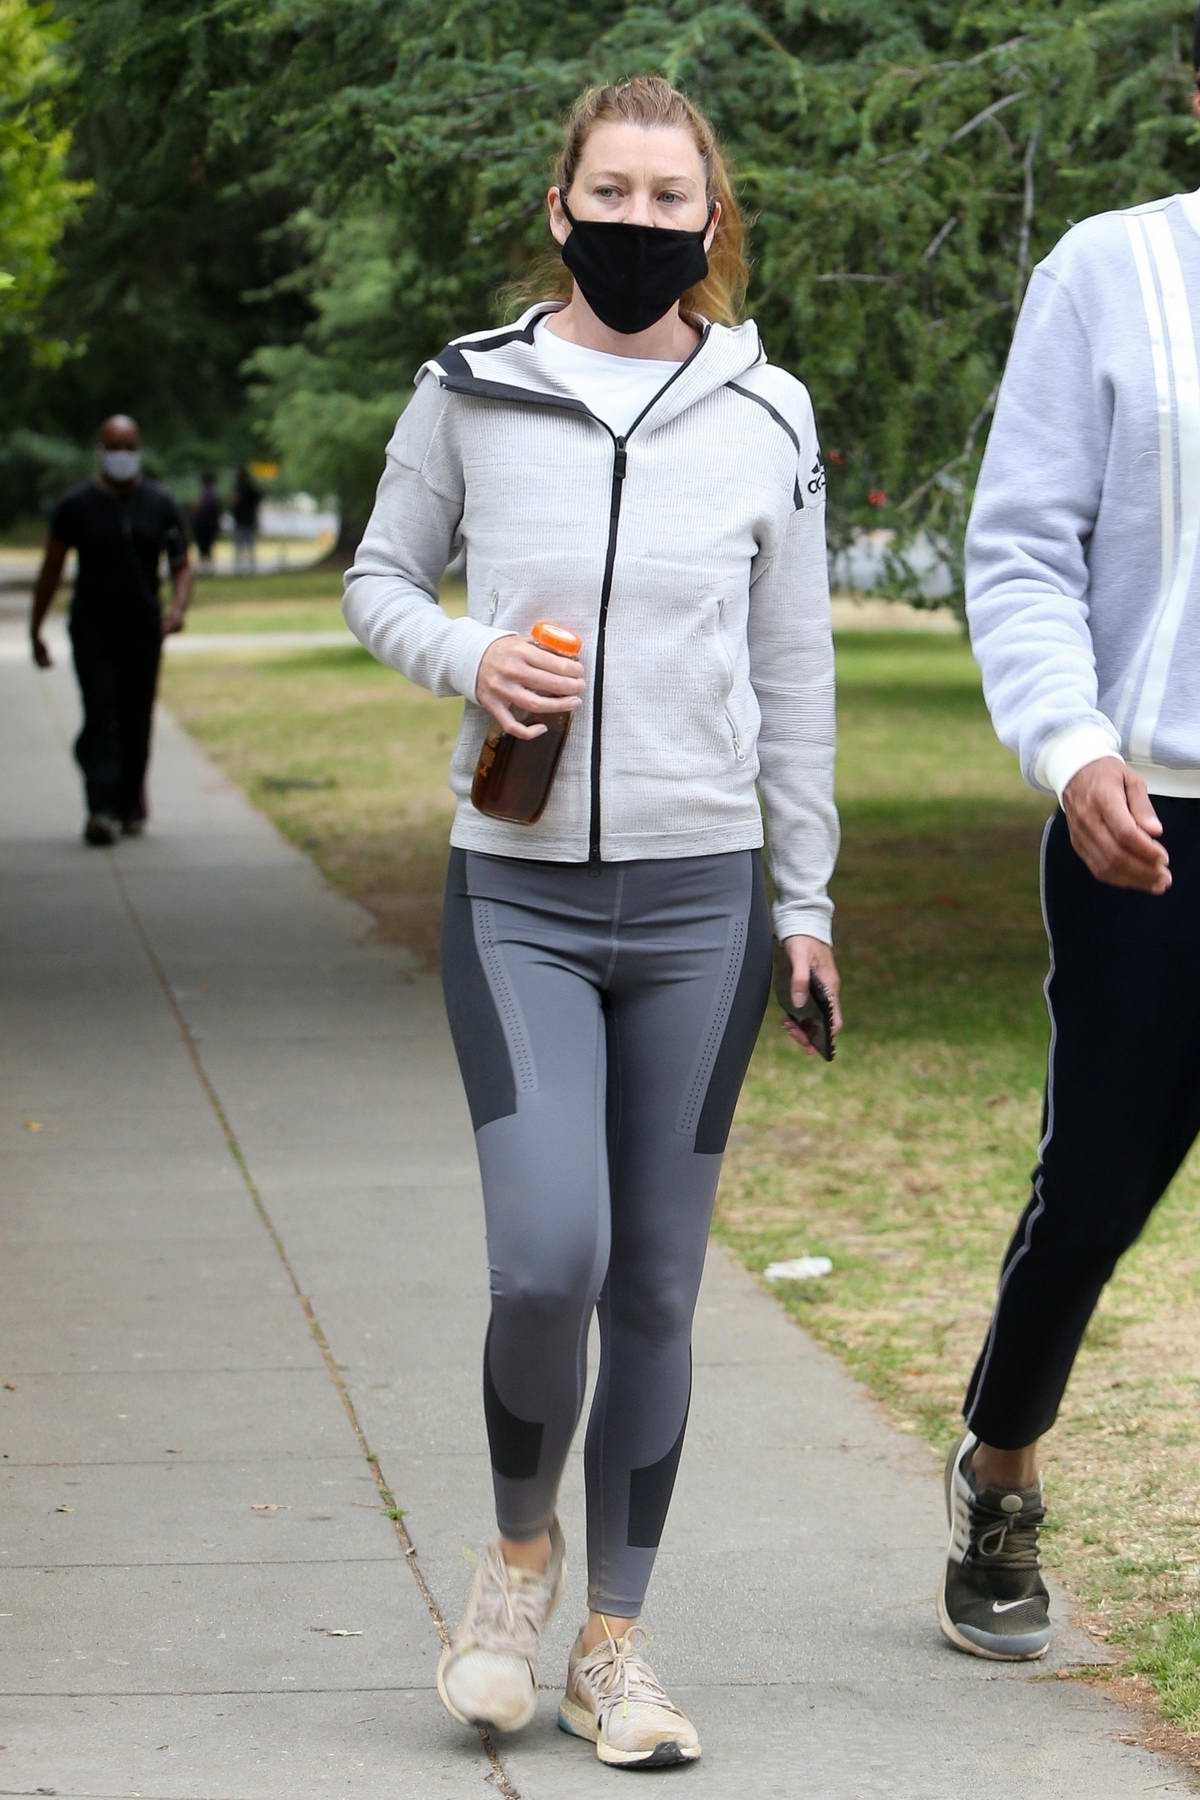 Ellen Pompeo sports workout gear while out on a hike with husband Chris Avery in Los Feliz, California